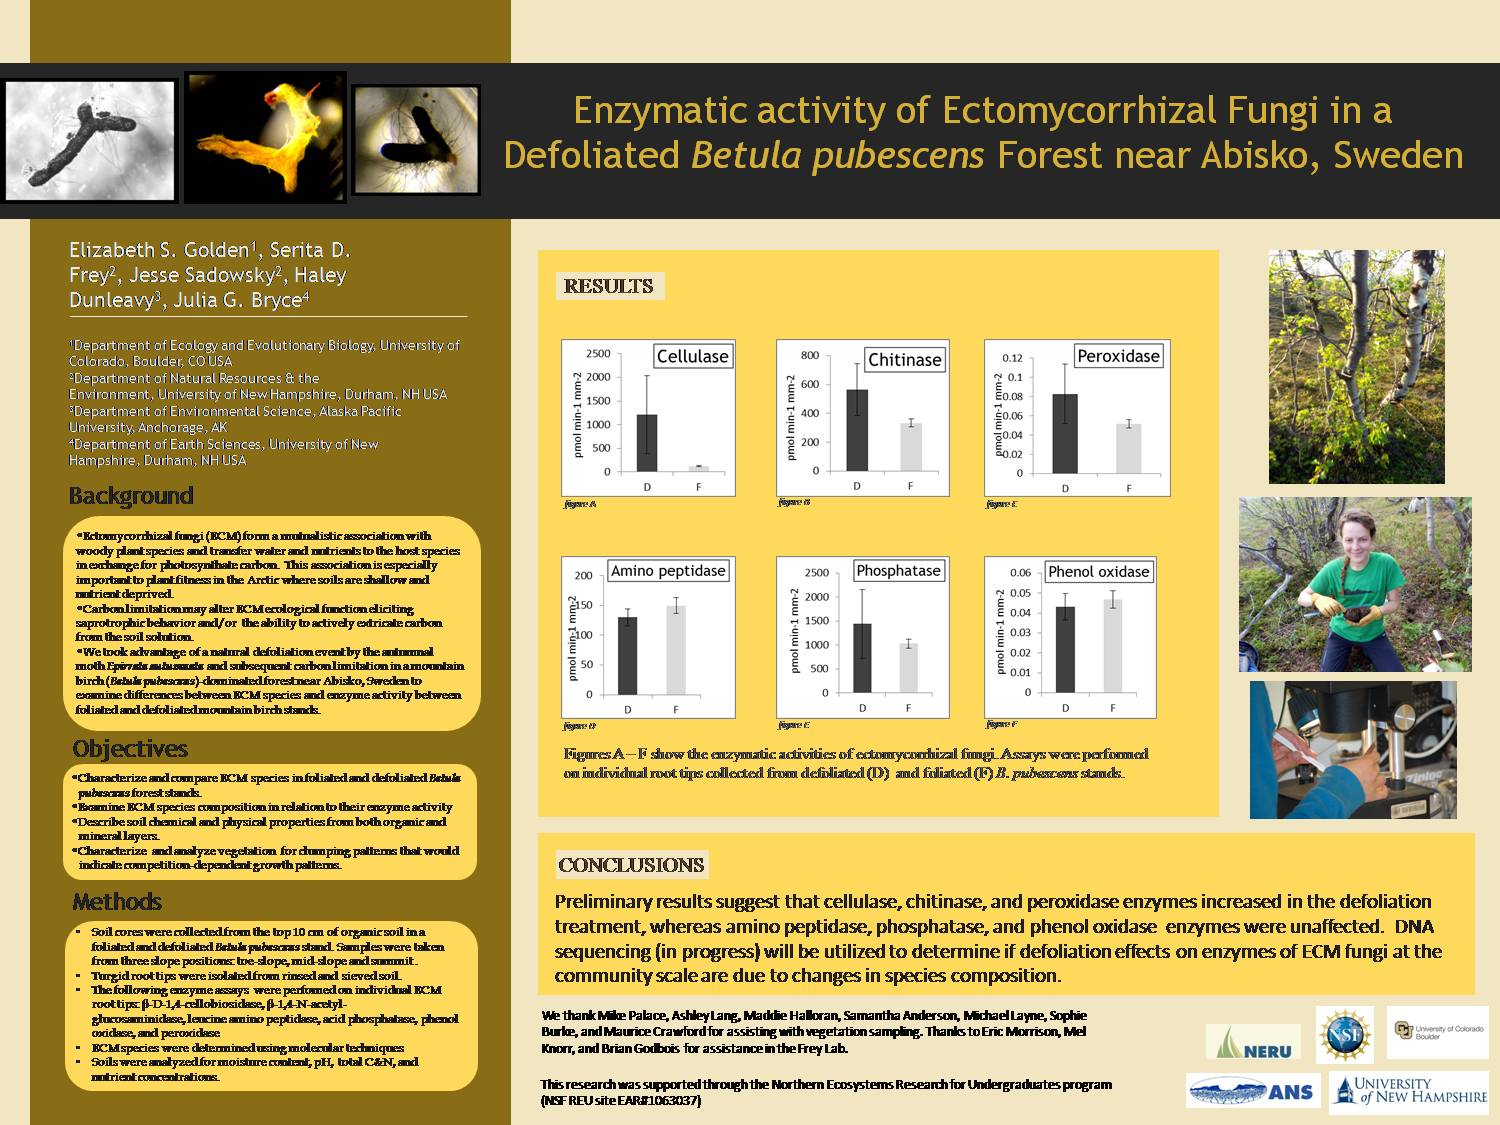 Enzymatic Activity Of Ectomycorrhizal Fungi In A  Defoliated Betula Pubescens Forest Near Abisko, Sweden  by elimaygolden